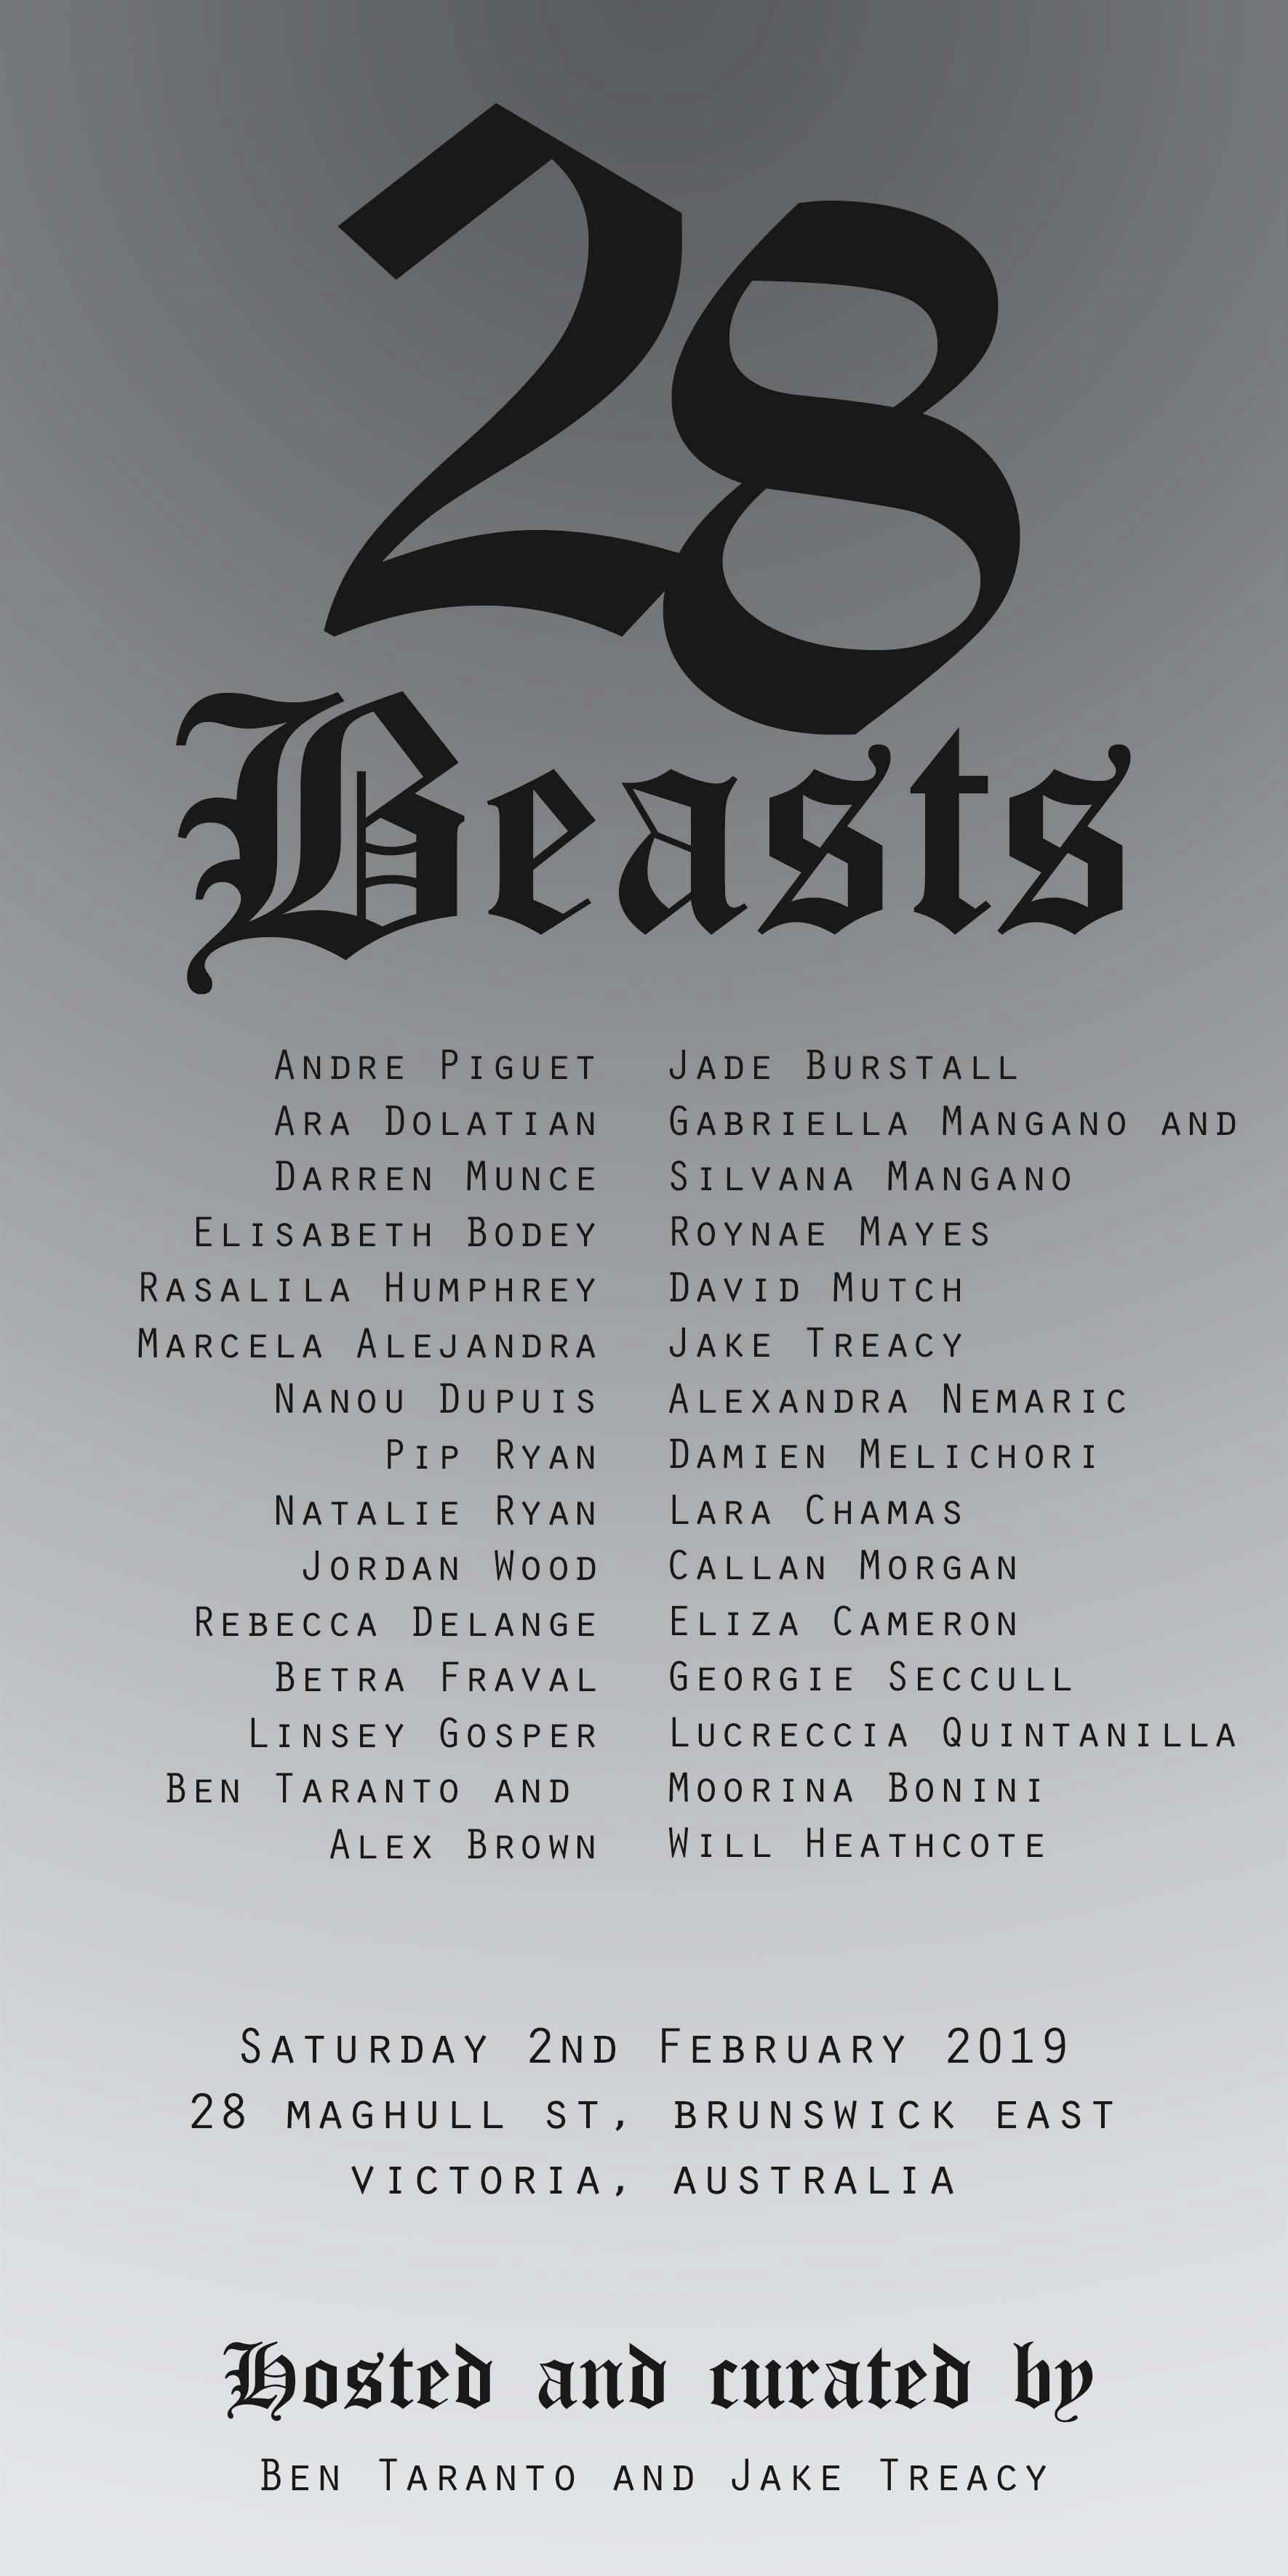 28Beasts_invite_front.jpg